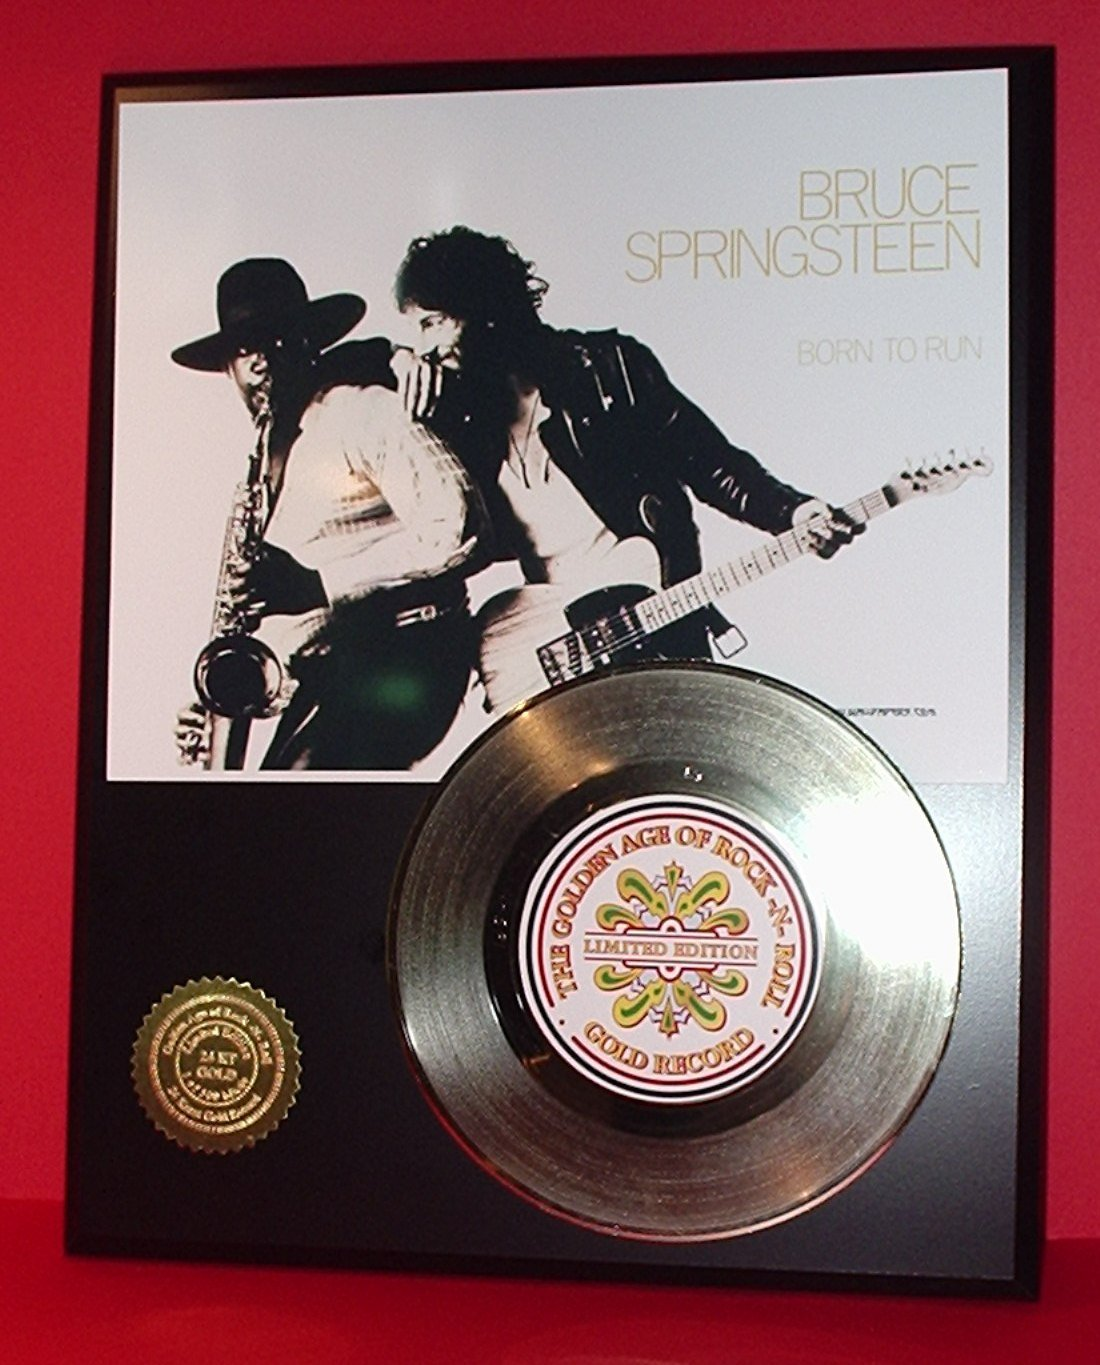 Bruce Springsteen Gold Record LTD Edition Display Actually Plays Born To Run  bruce springsteen live in dublin blu ray